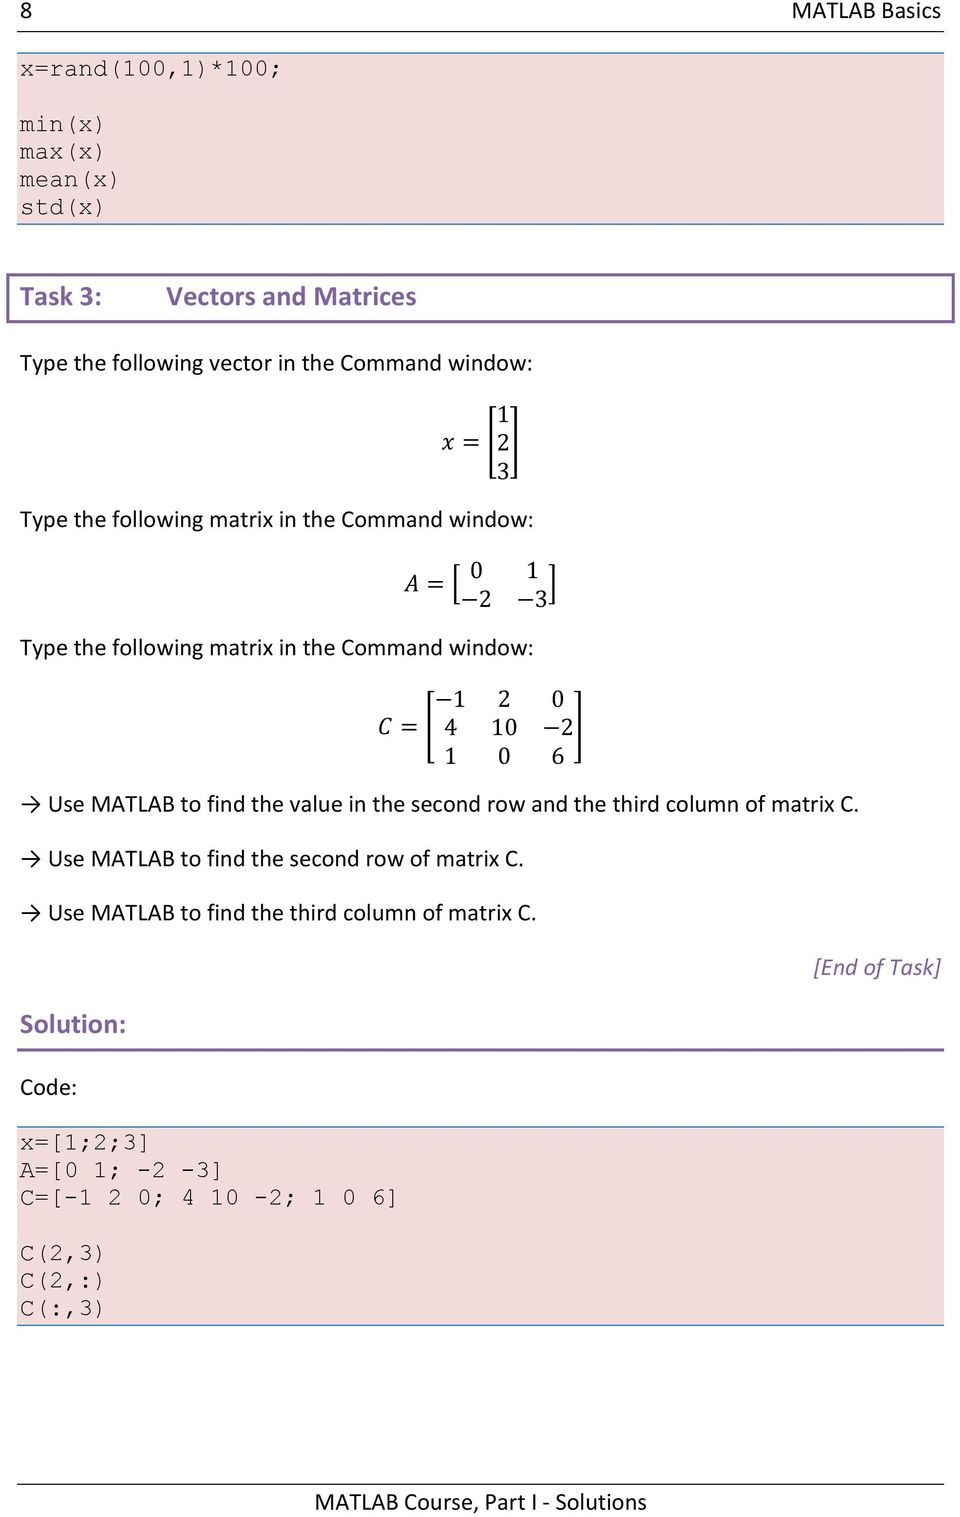 how to make a 5 by 10 matrix matlab